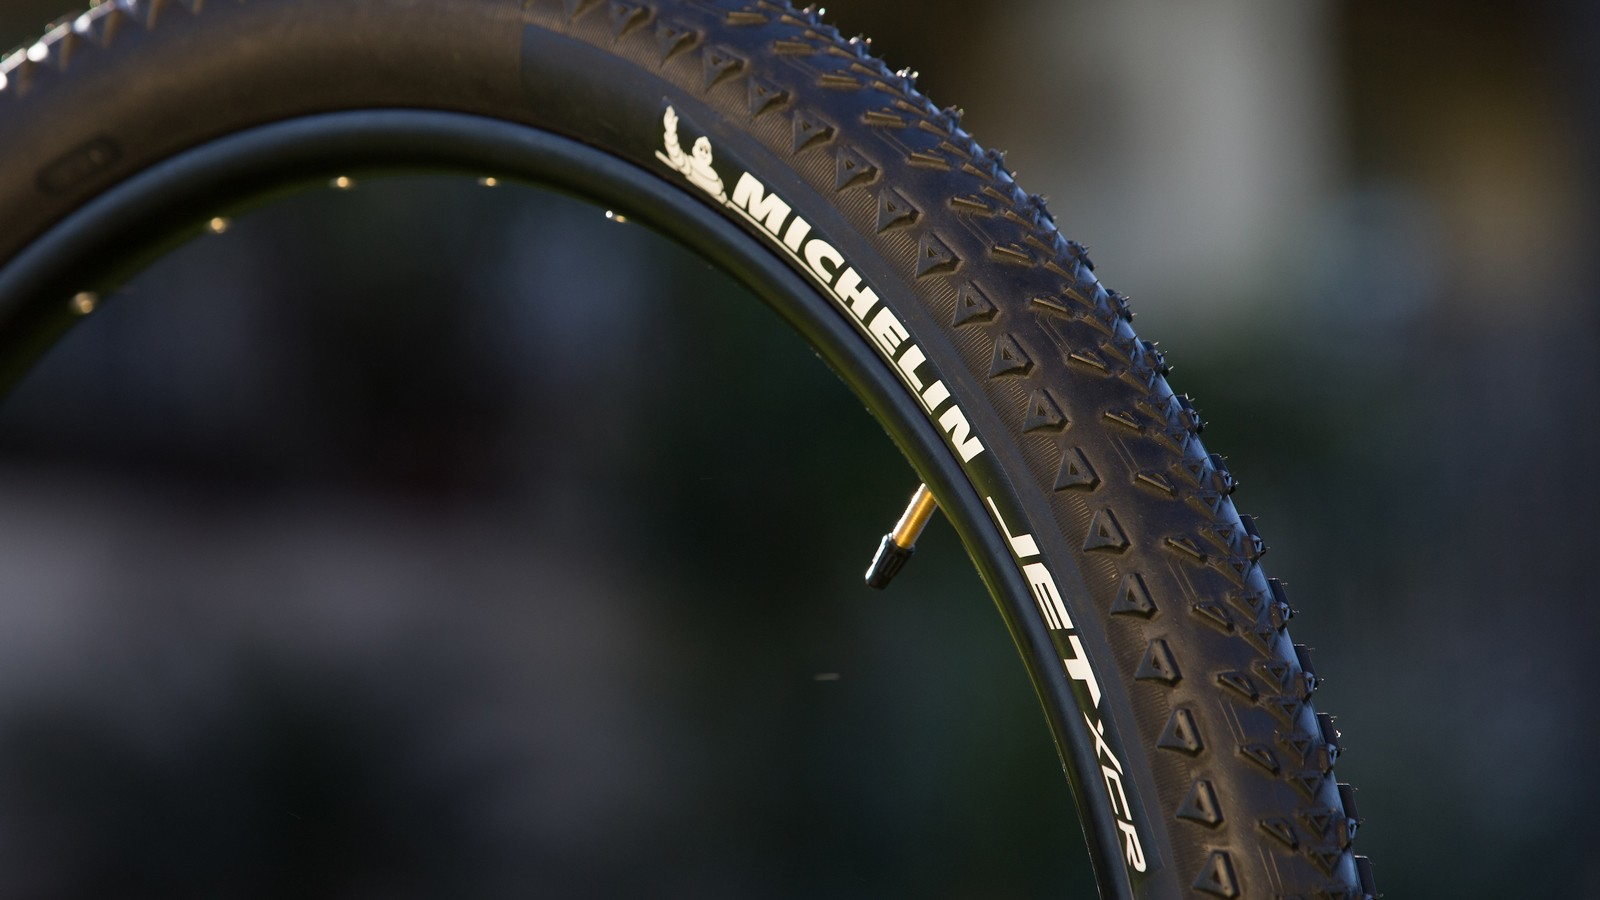 The Jet XCR is Michelin's cross country competition tire. The low weight and minimal tread should roll fast